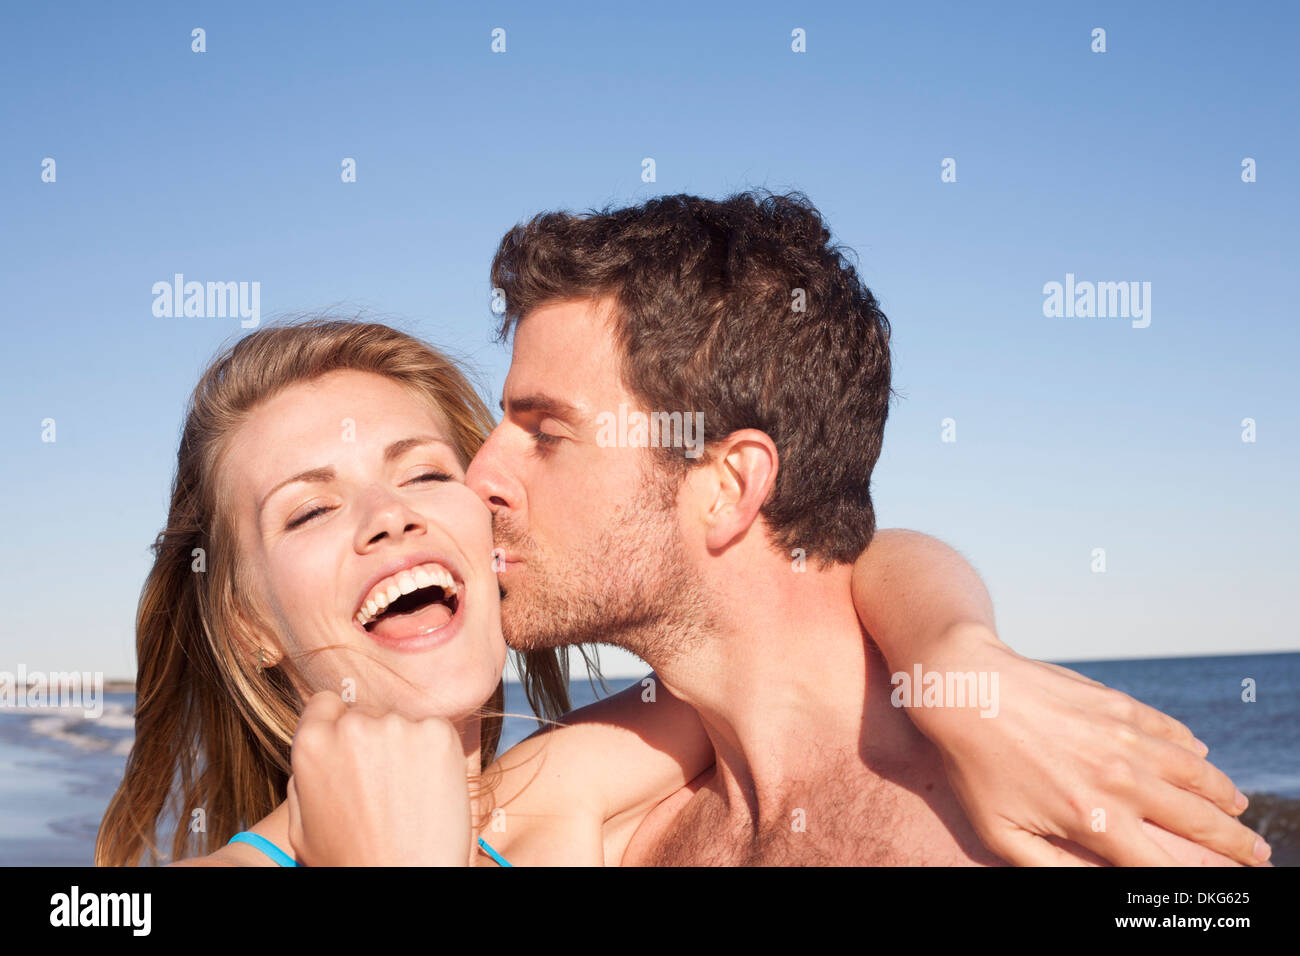 Close up portrait of couple on beach, Breezy Point, Queens, New York, USA Stock Photo